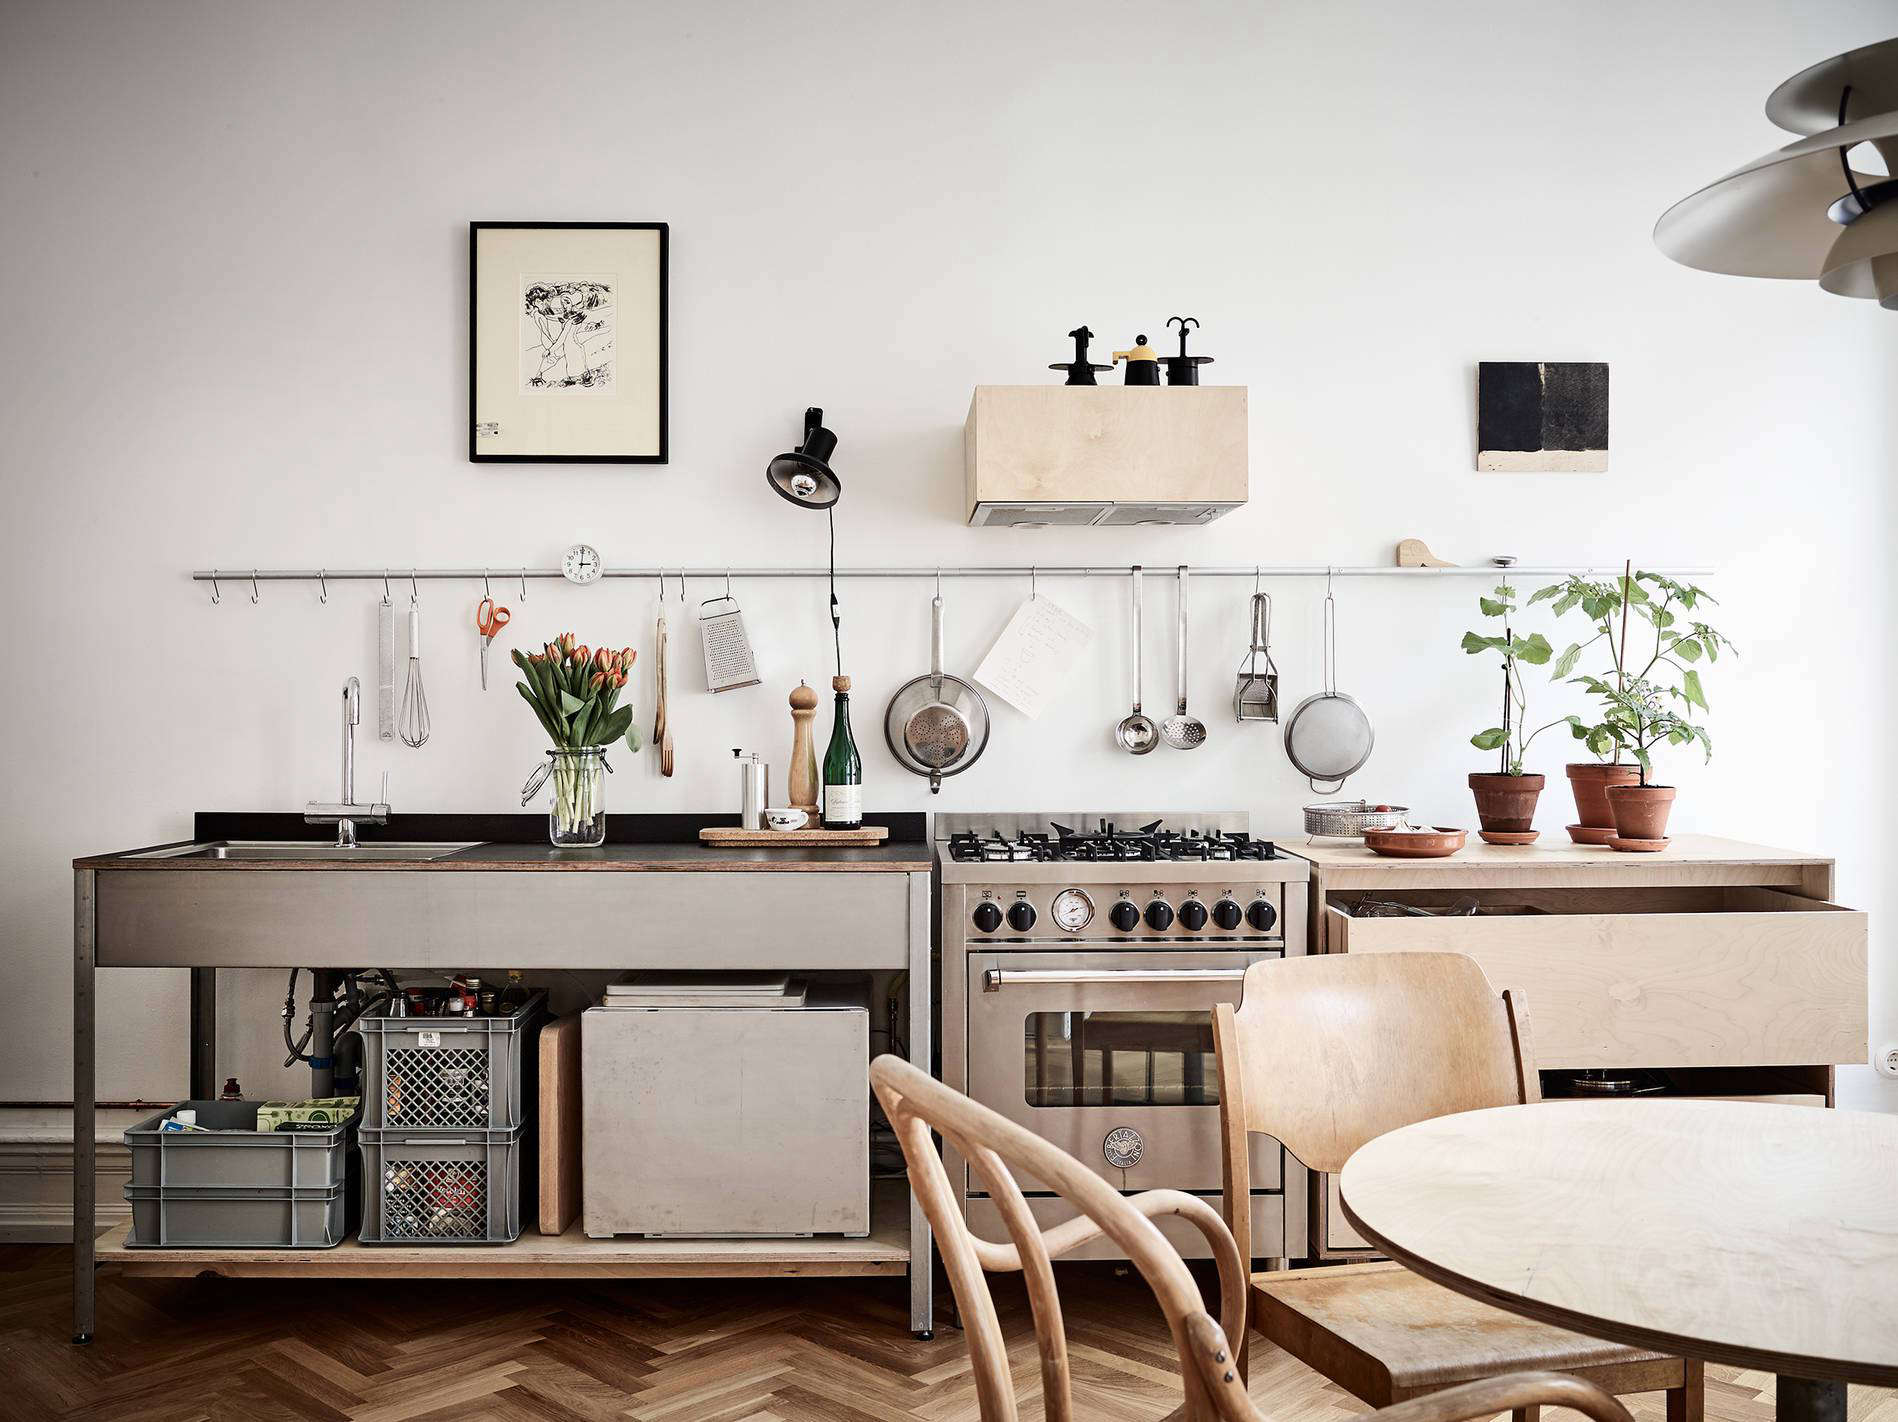 Steal This Look Smart Storage in a Swedish Kitchen The kitchen operations consist of astainless restaurant cart, a compact Bertazzoni range, and a set of plywood drawers.Photograph courtesy of Stadshem.